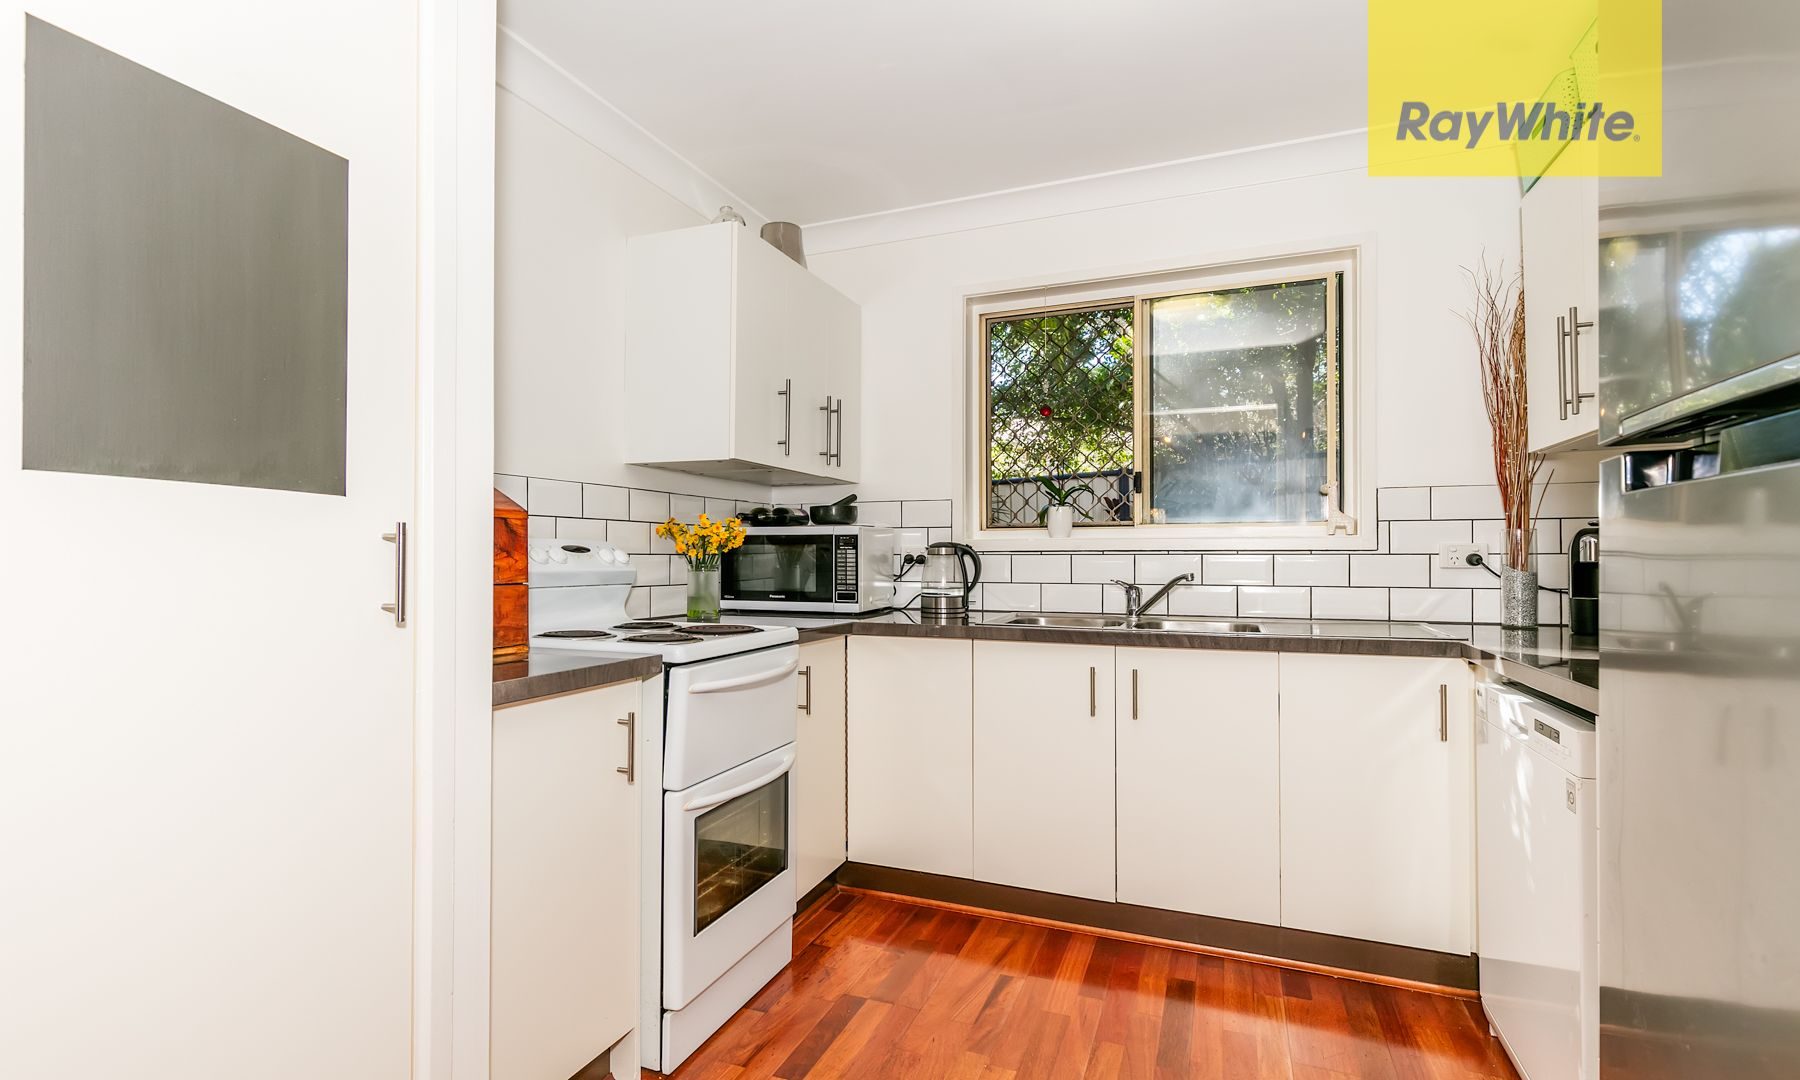 17/15-17 Bourke Street, Waterford West QLD 4133, Image 1